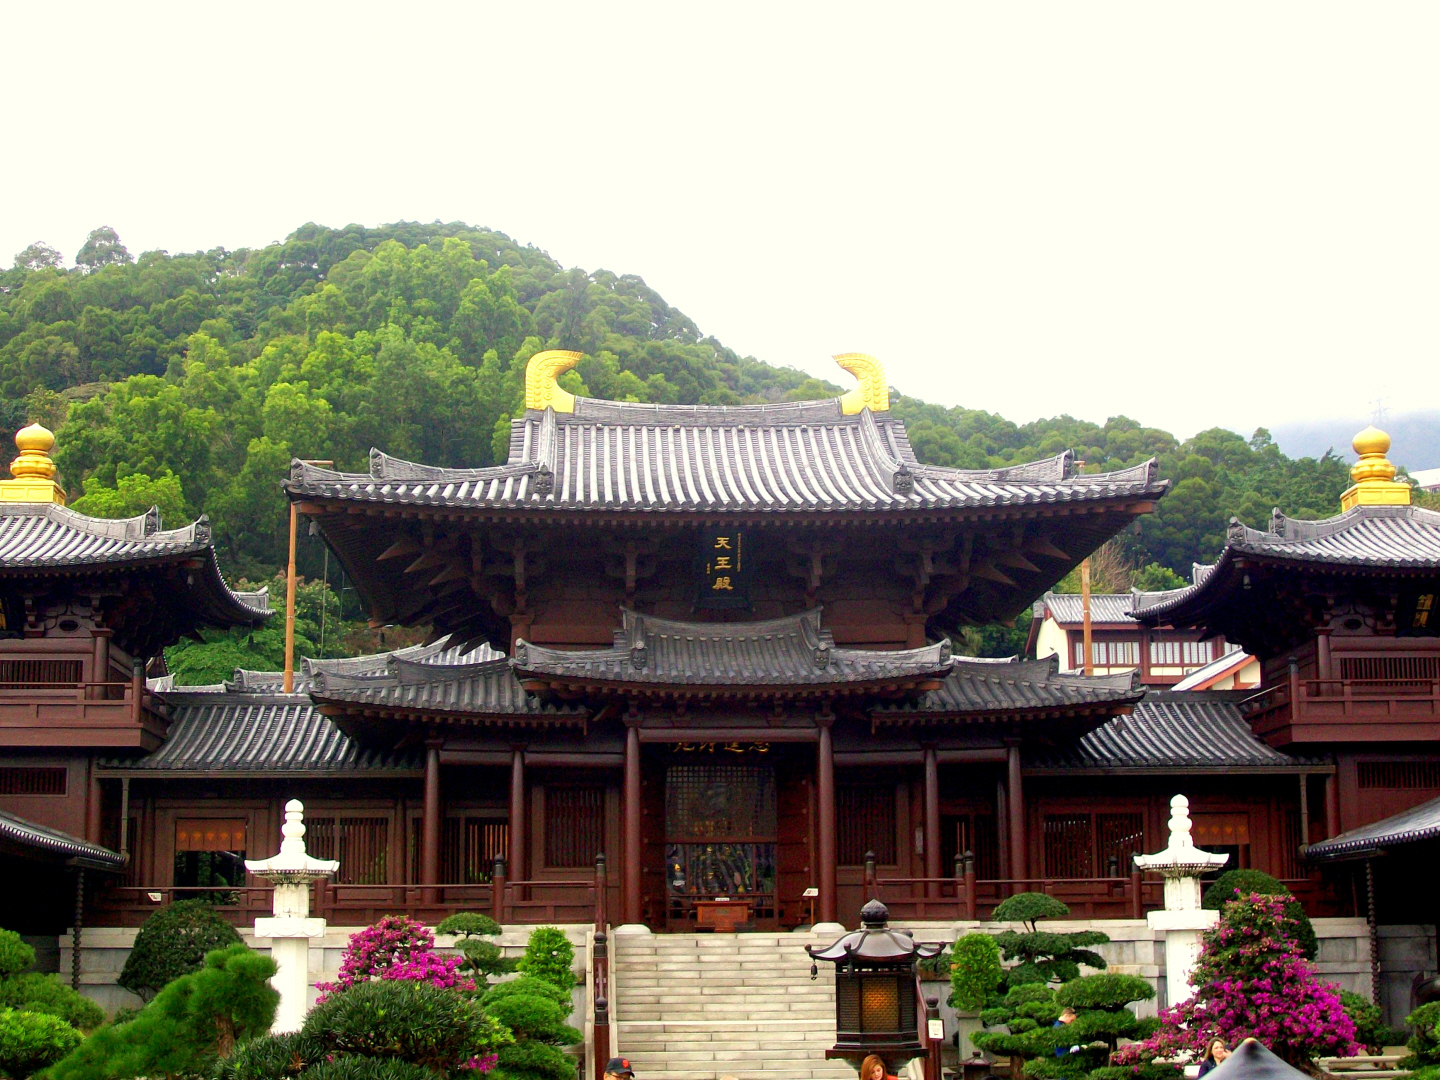 Exquisite Chi Lin Buddhist Nunnery - Kowloon Island off of Hong Kong